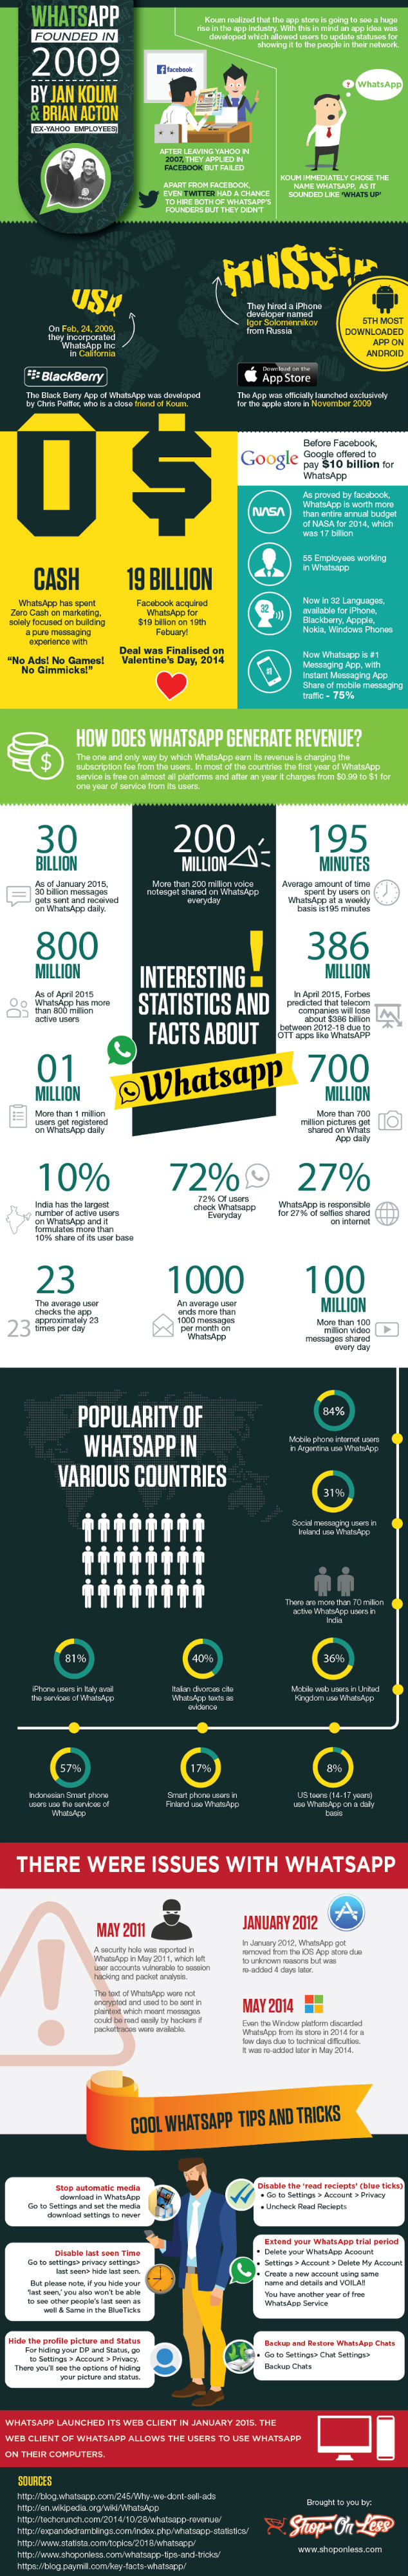 Interesting Facts About WhatsApp [Infographic]